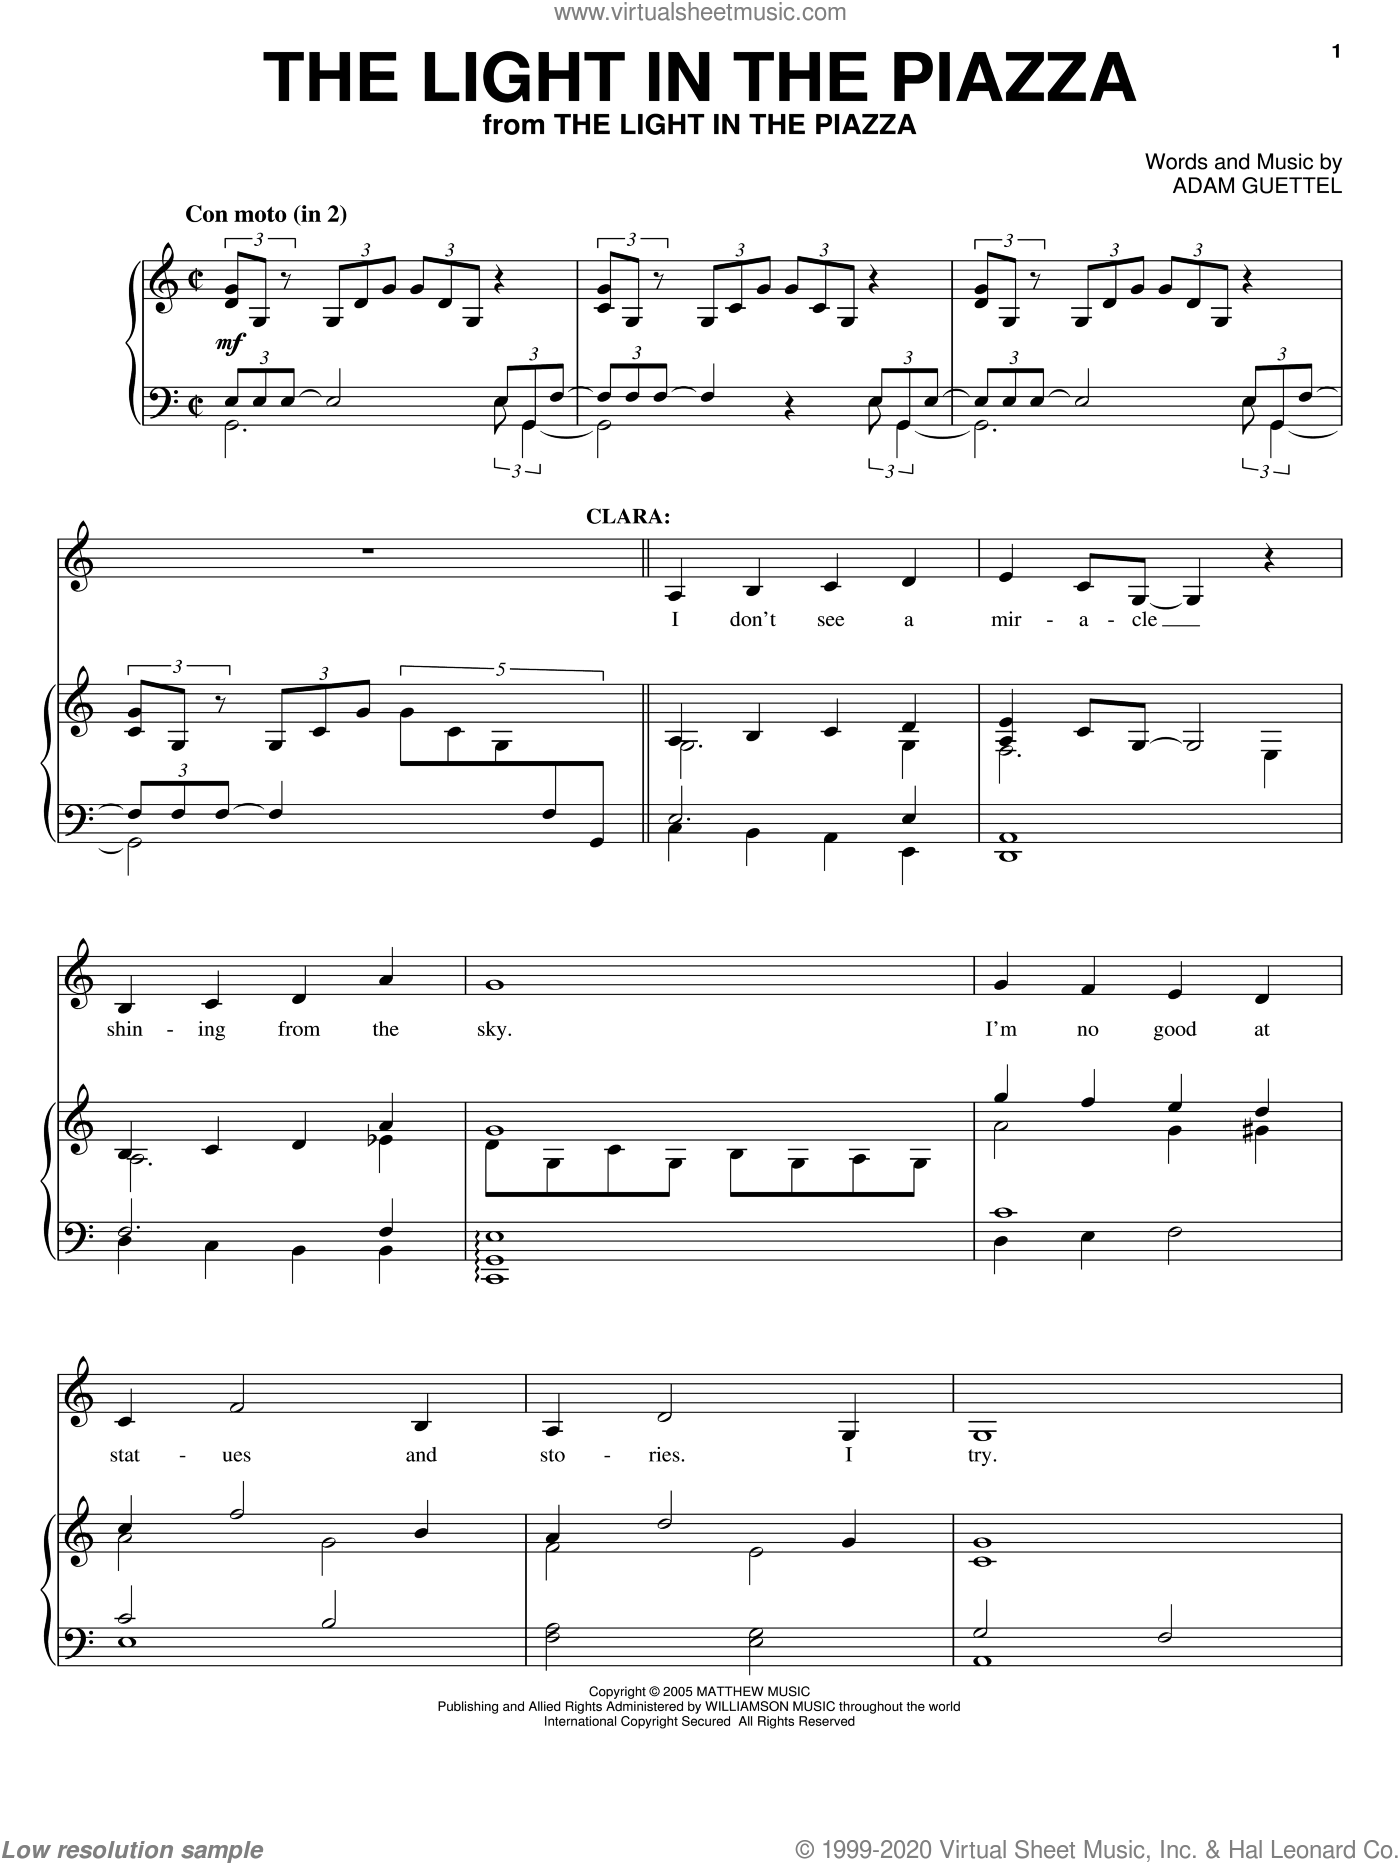 The Light In The Piazza sheet music for voice, piano or guitar by Adam Guettel